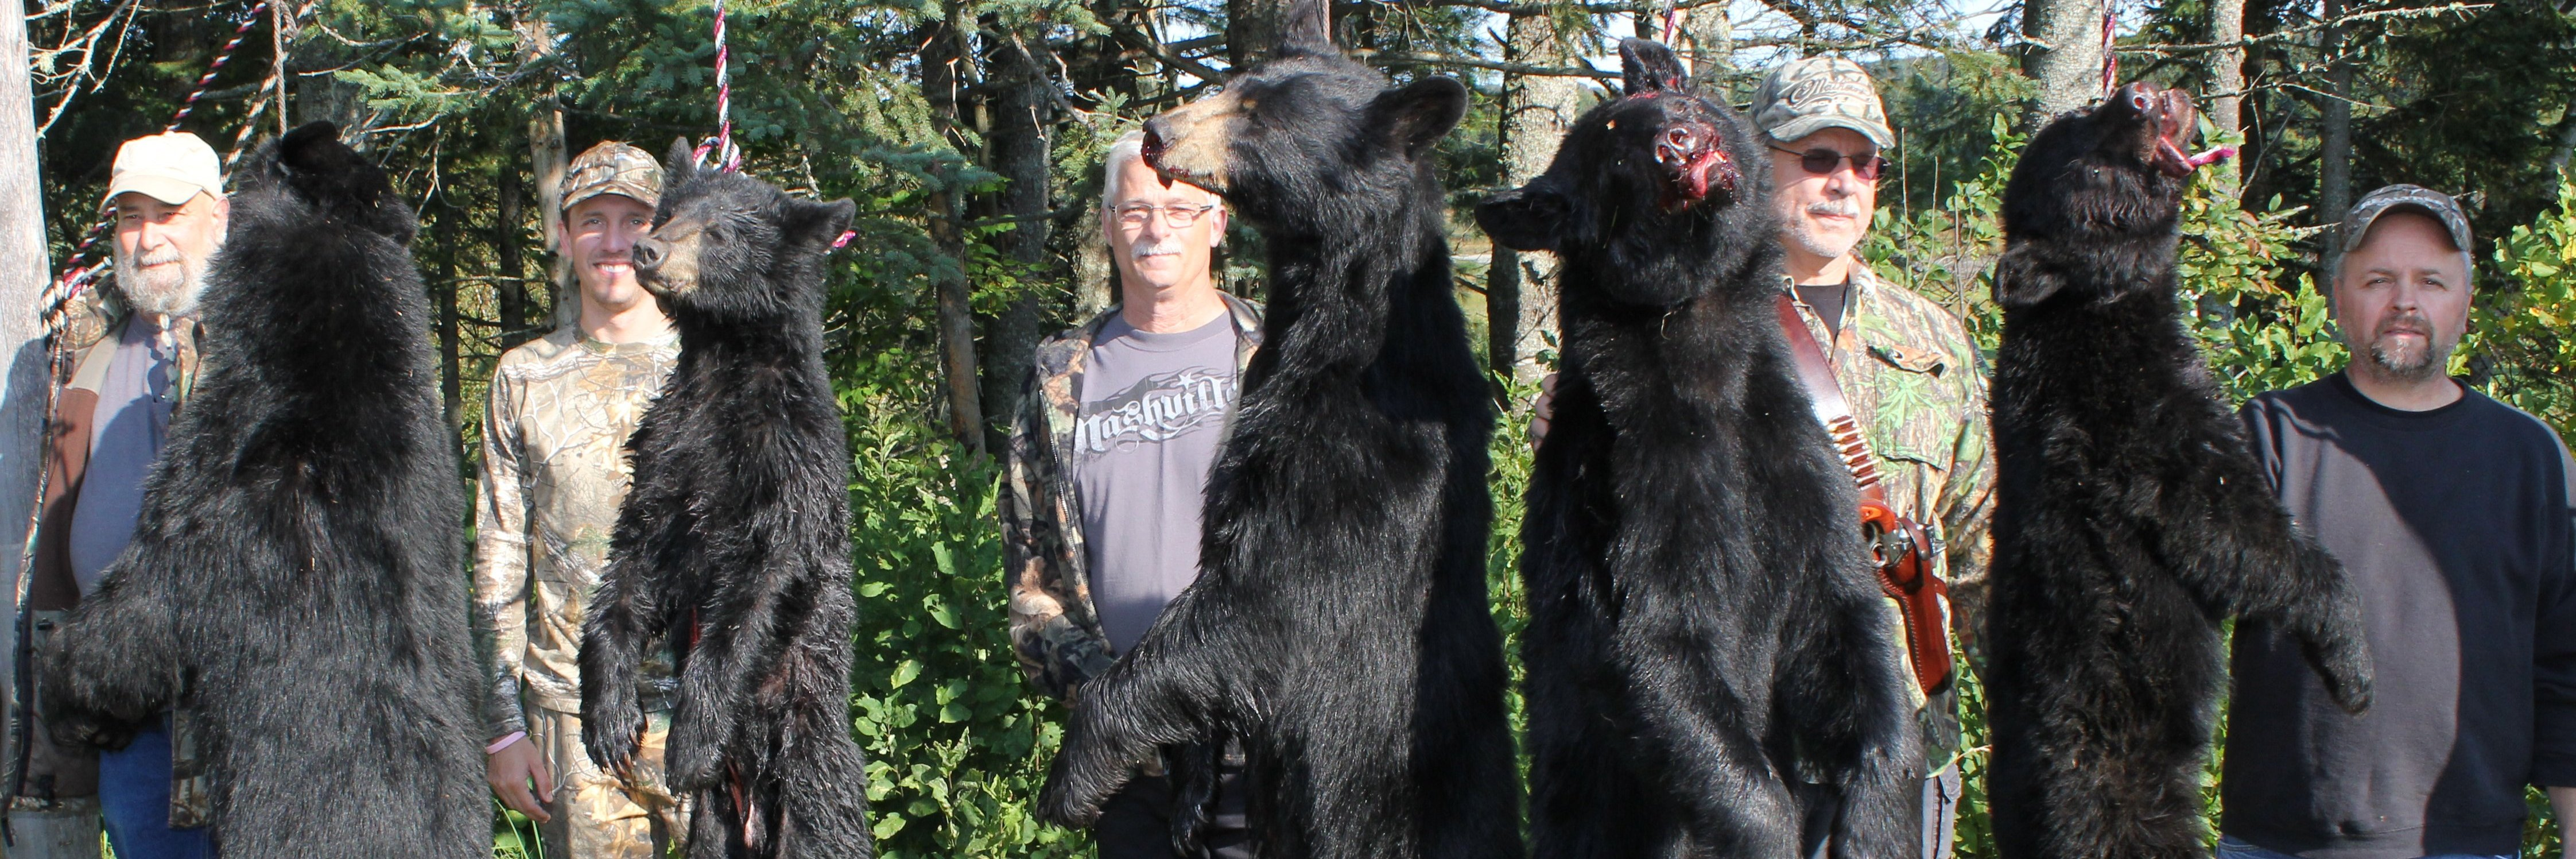 Black Bear Hunts In Maine Foggy Mountain Guide Service